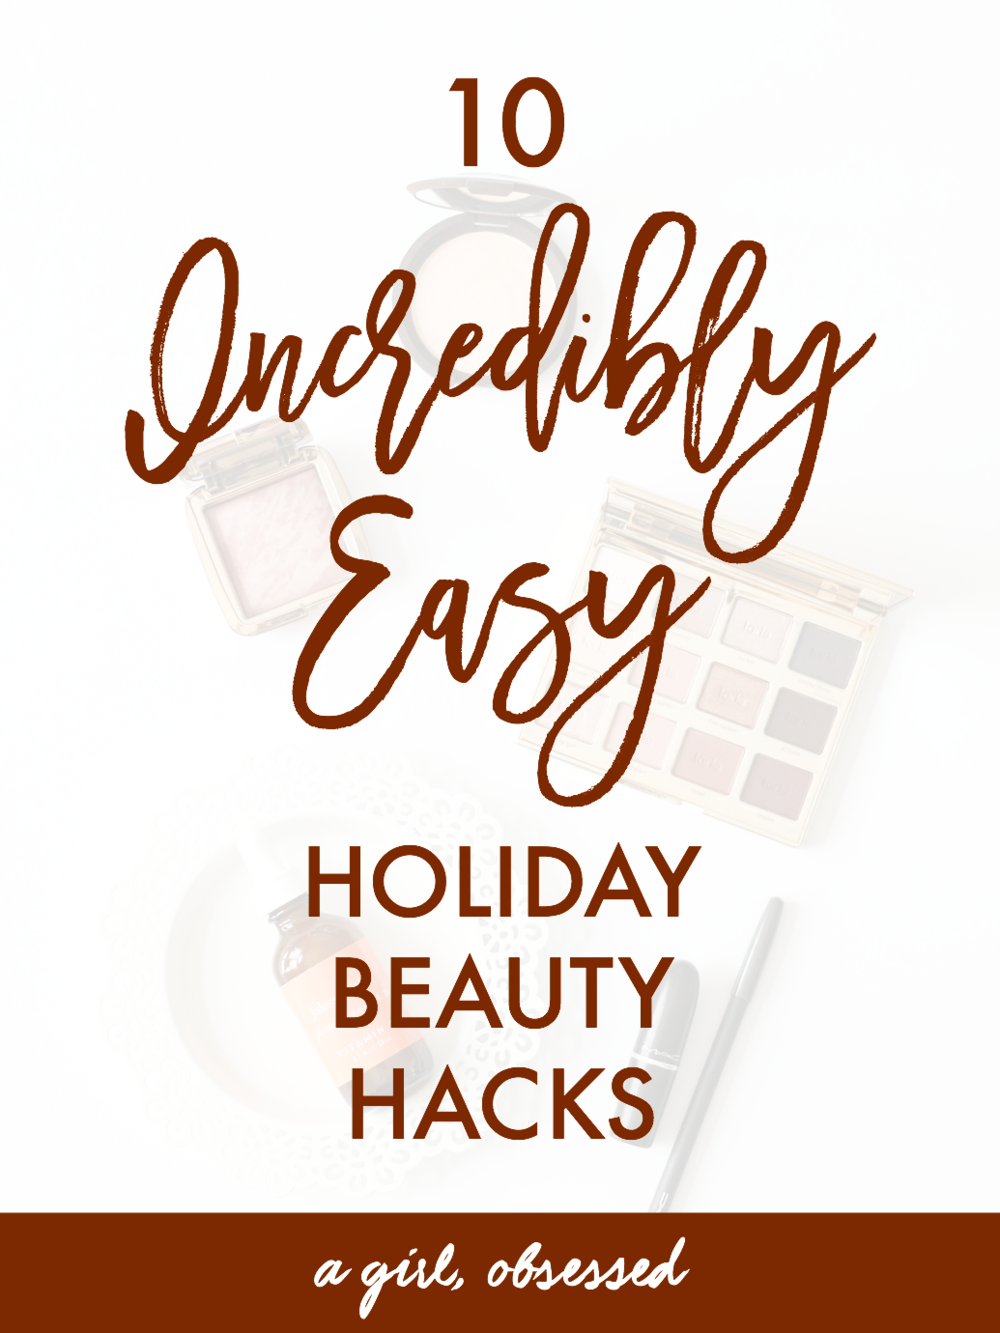 10 Easy Holiday Beauty Hacks | A Girl, Obsessed